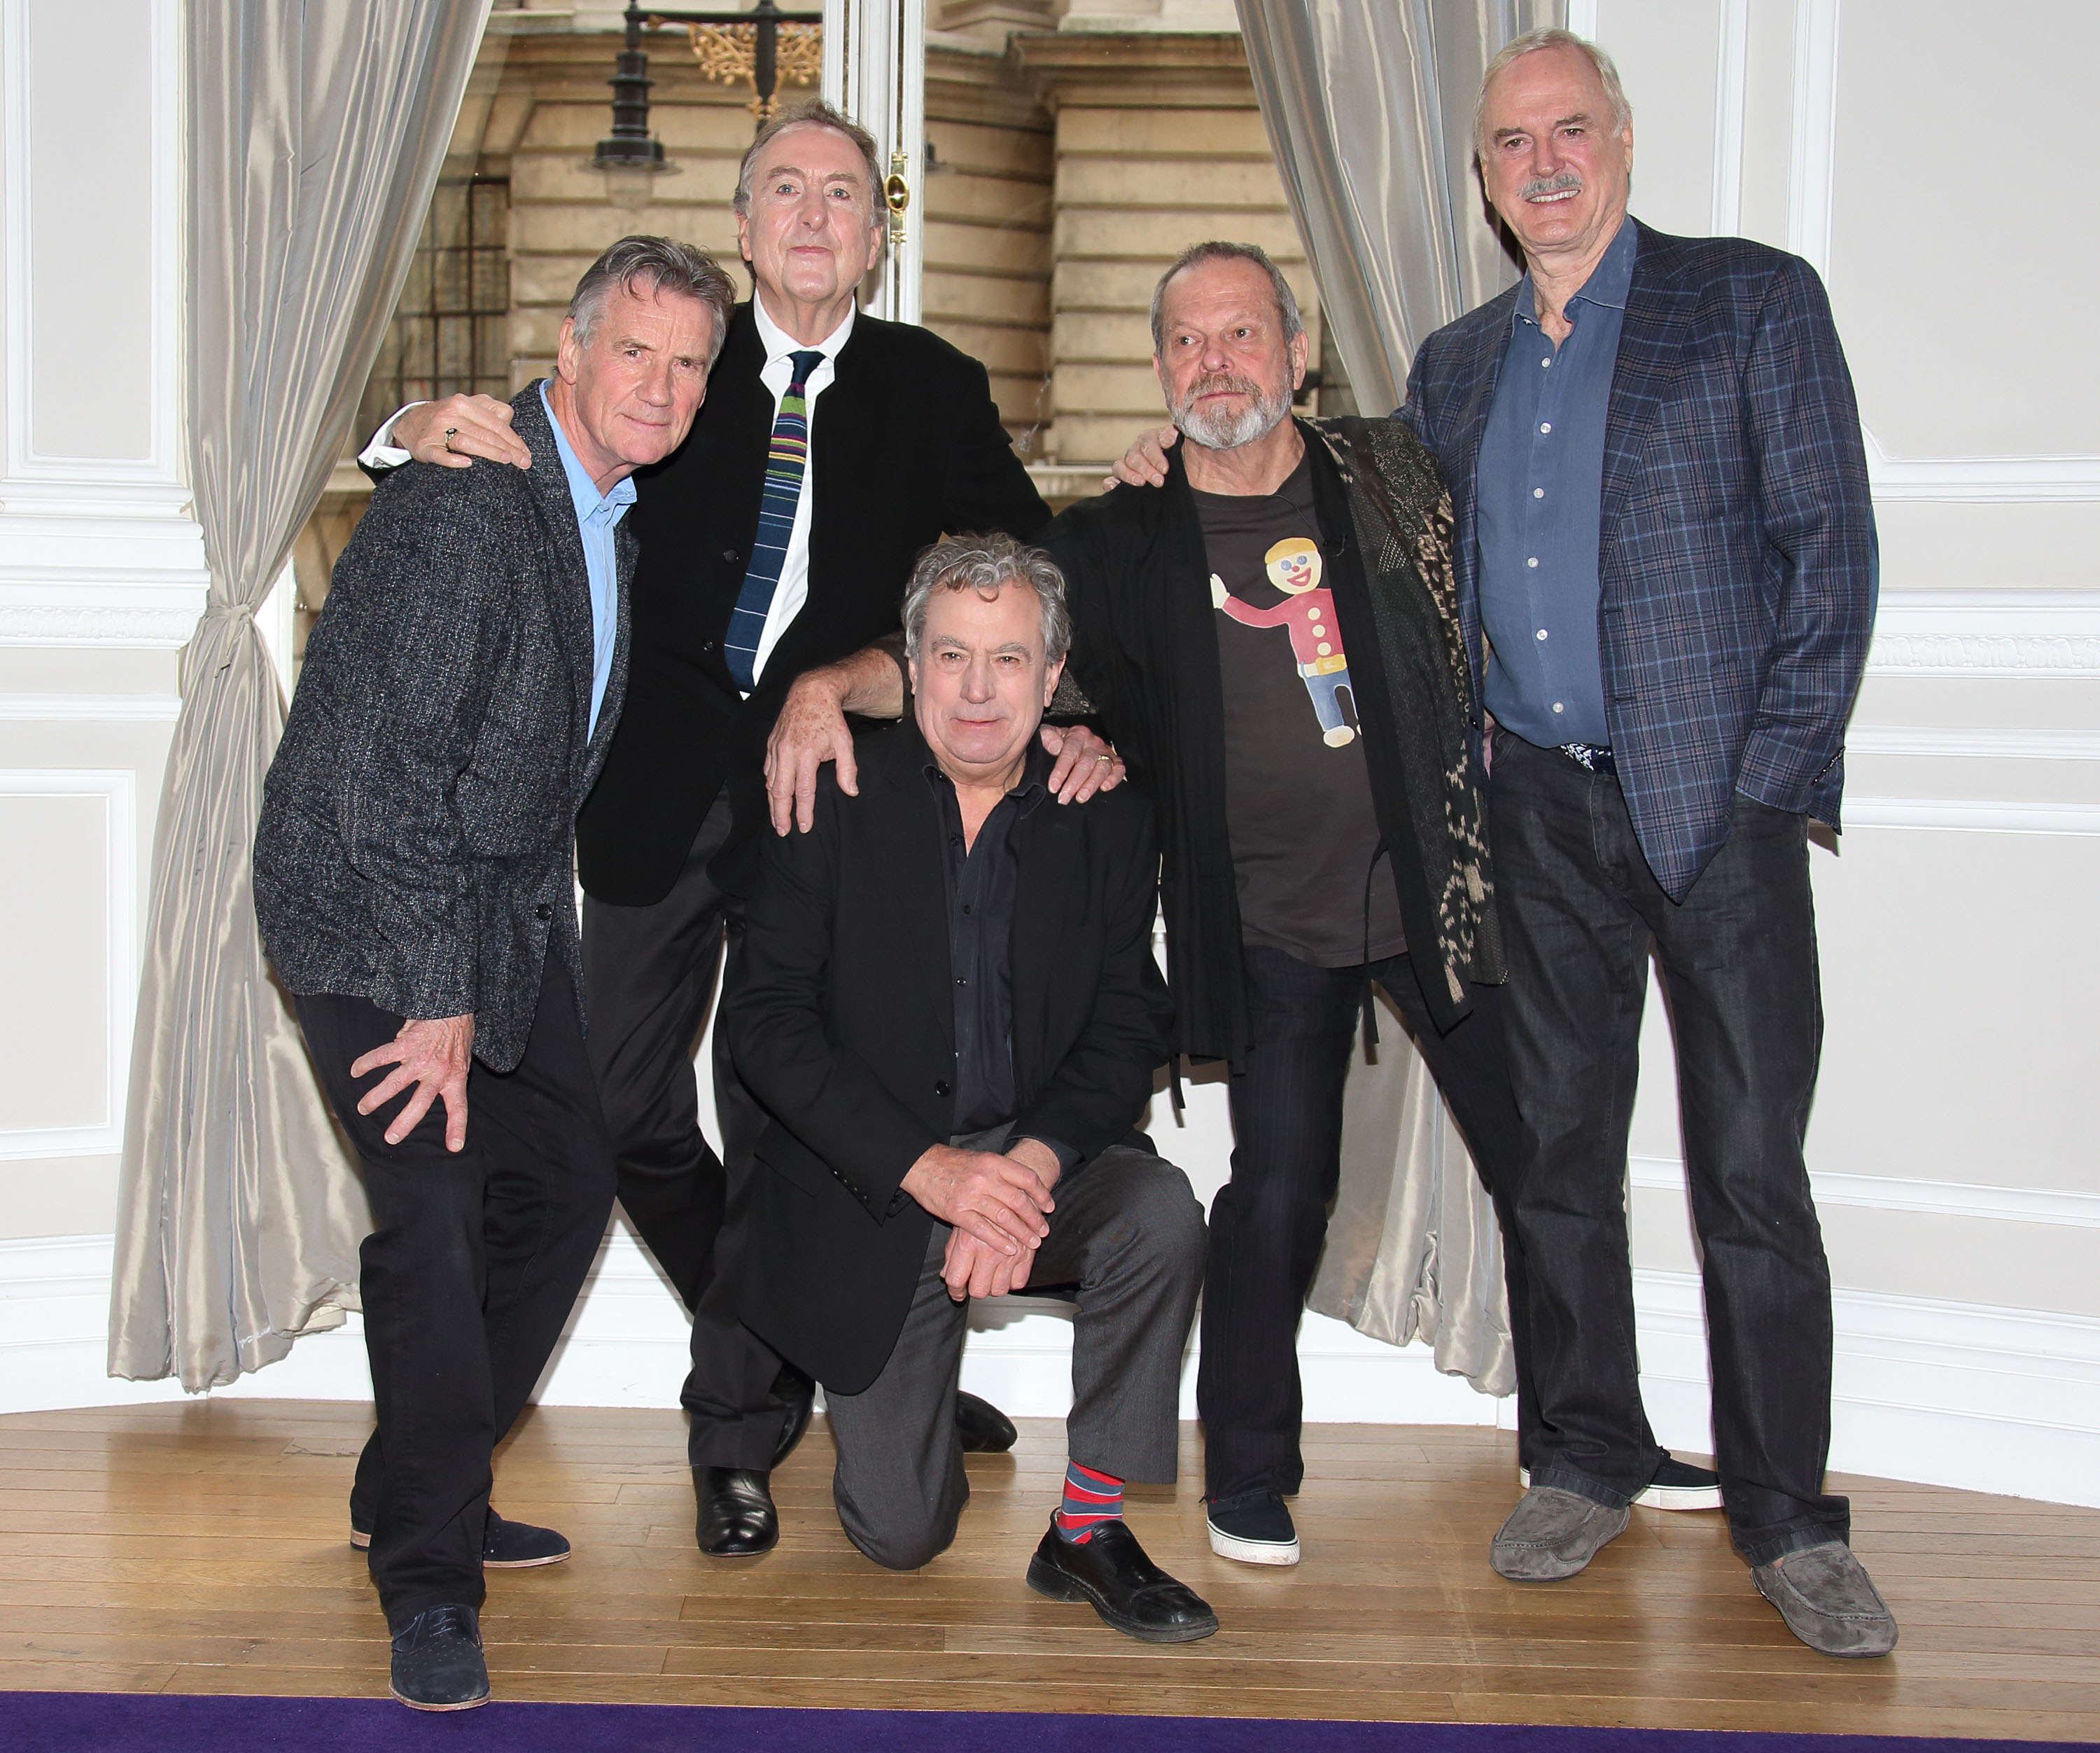 John Cleese, Eric Idle, Terry Gilliam, Michael Palin and Terry Jones at a conference to announce a Monty Python Reunion on November 21, 2013 in London, England.